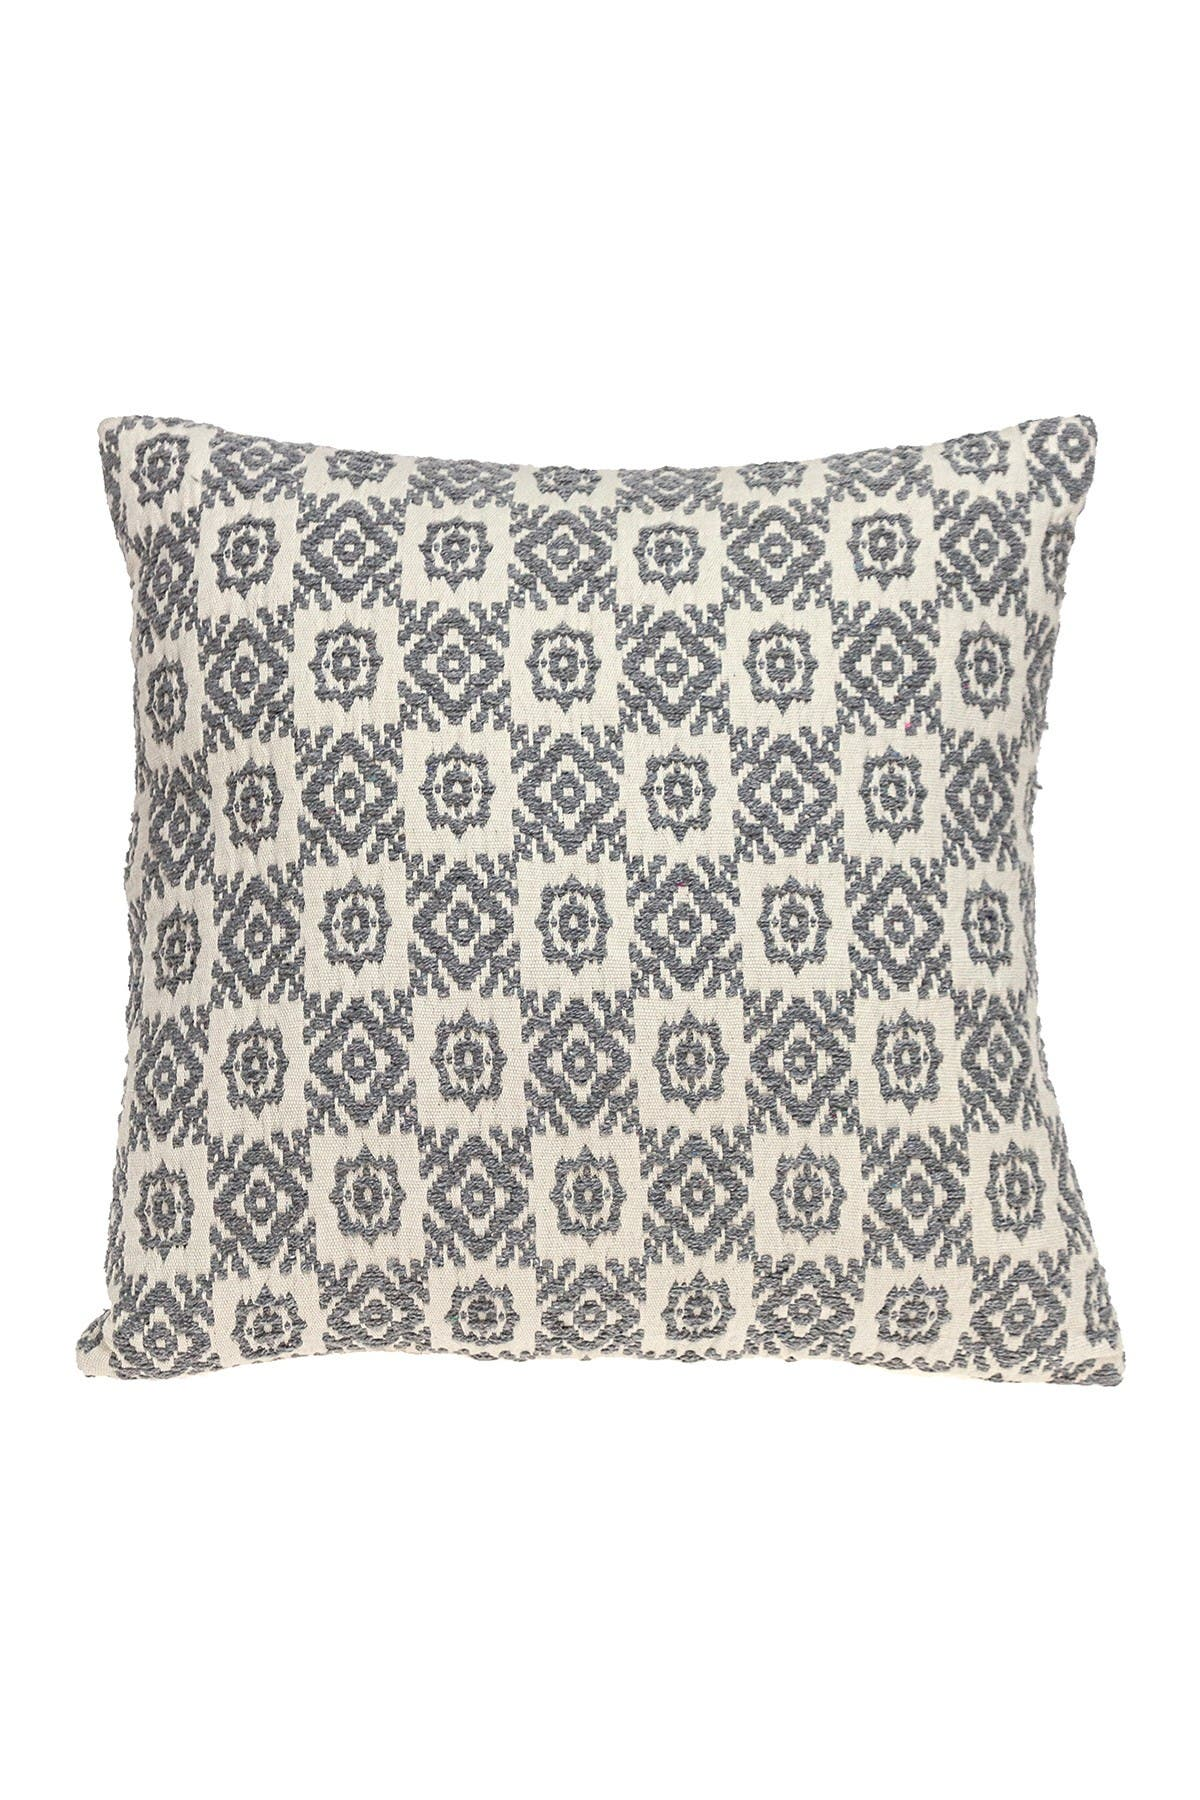 Image of Parkland Collection Faraz Transitional Beige Throw Pillow